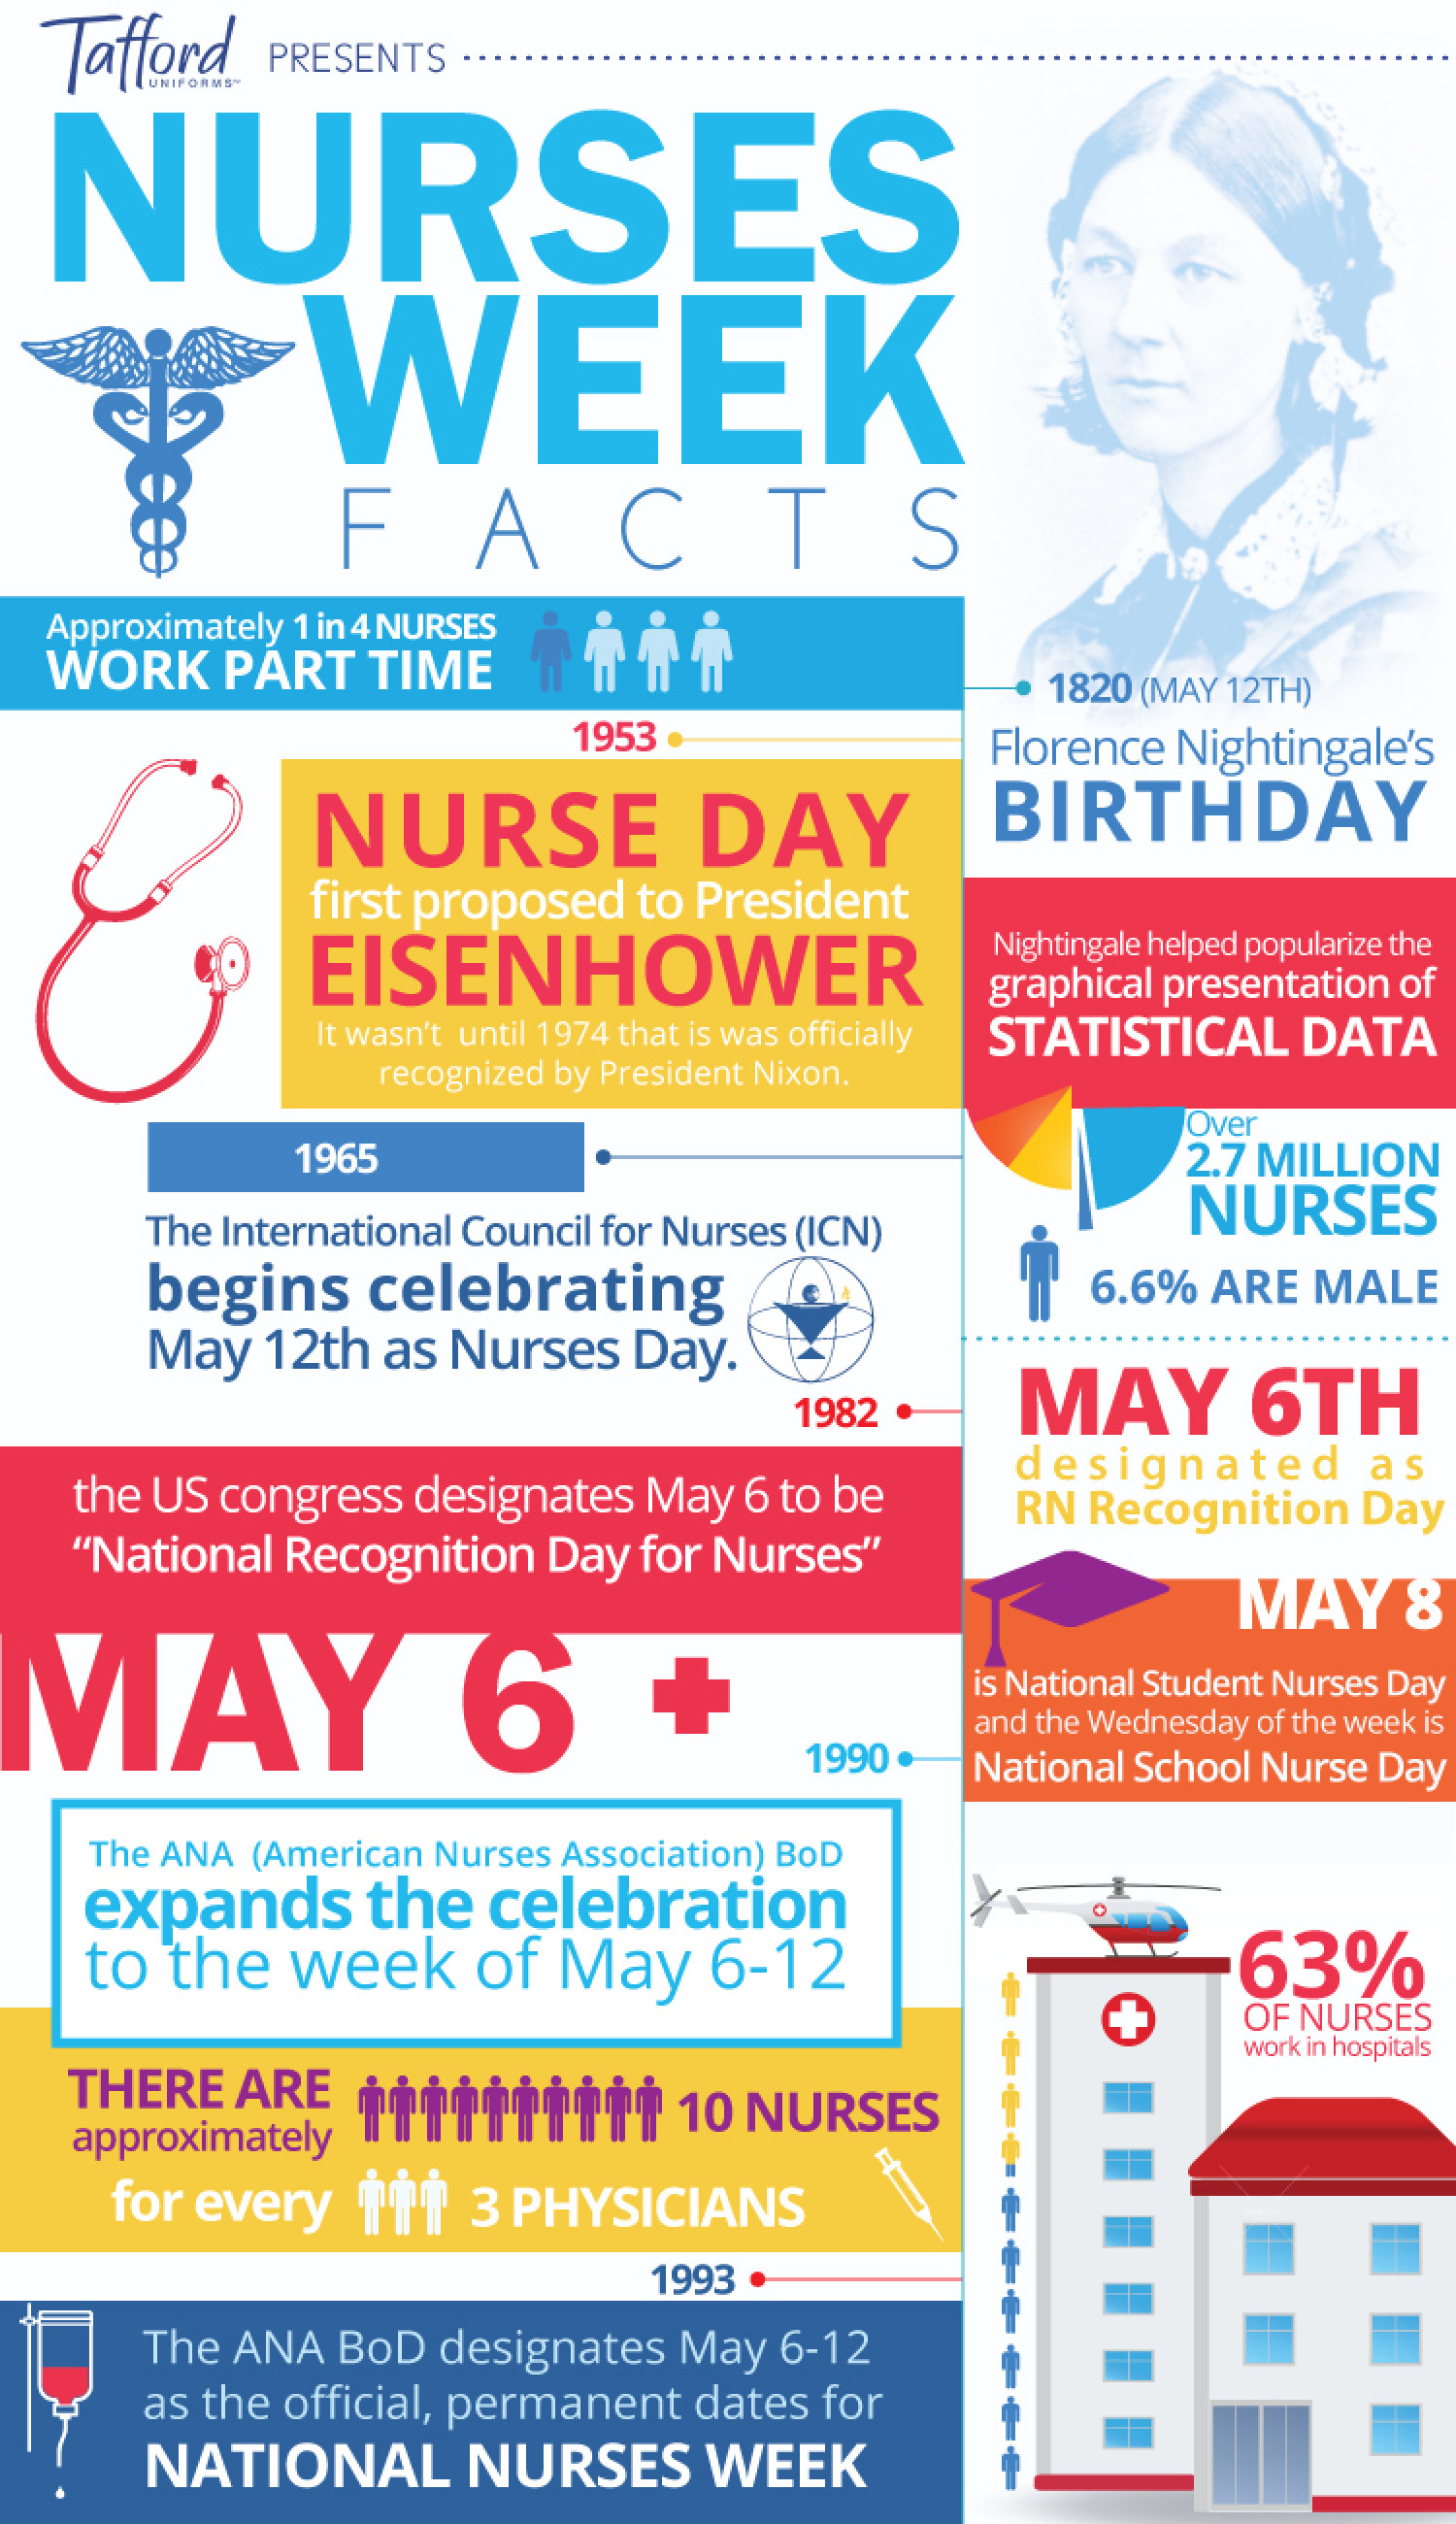 Nurses Week Facts Infographic